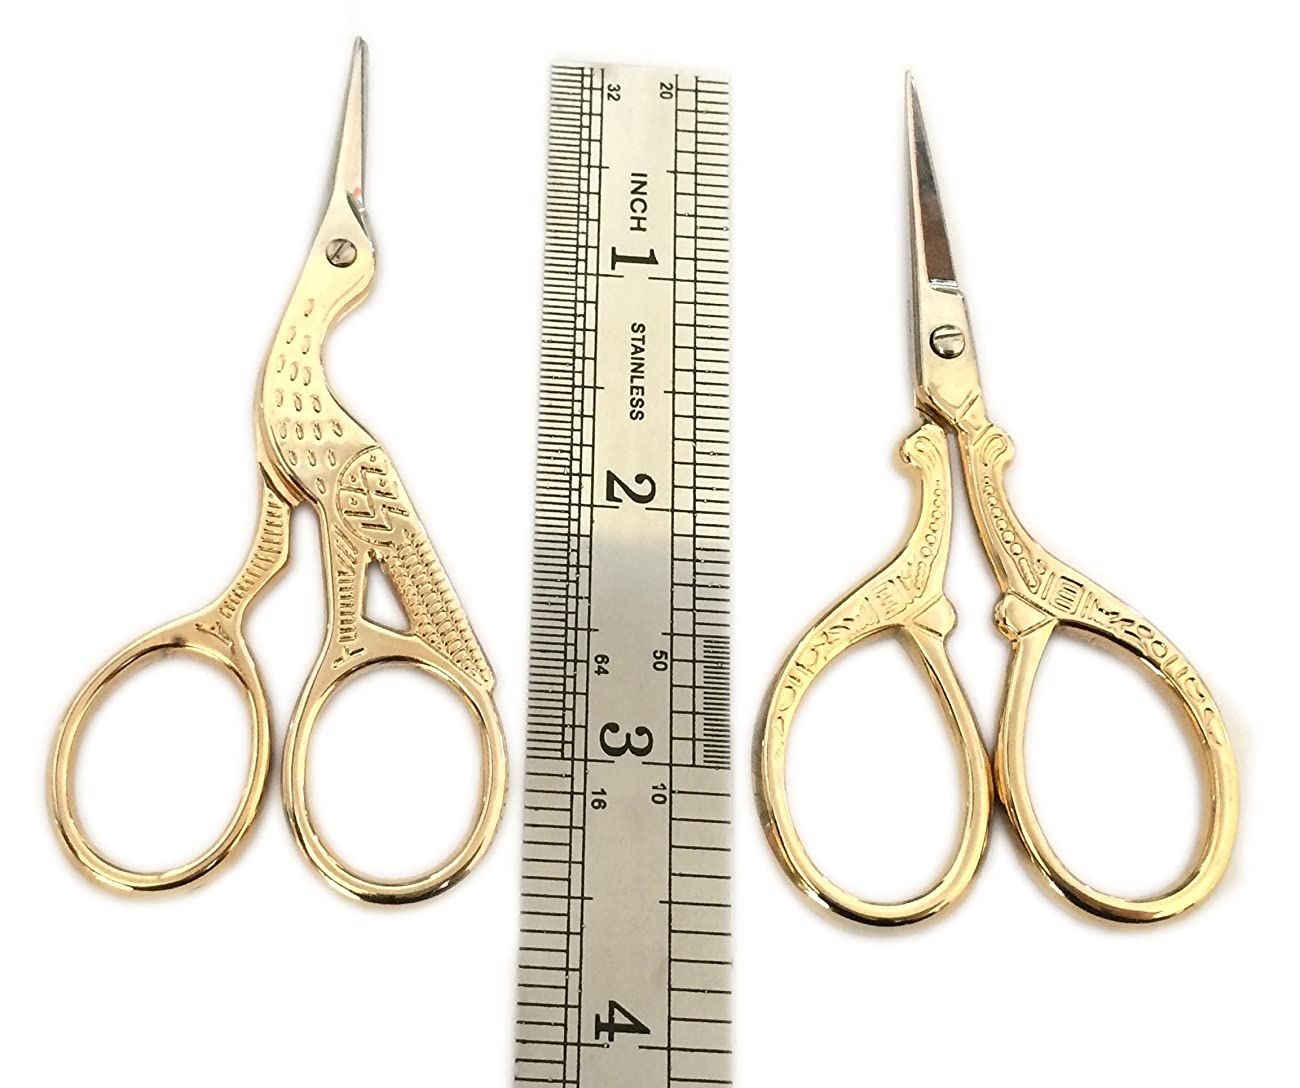 TWO High Quality 3.5 Inch Gold Plated Stainless Steel Scissors for Embroidery, Sewing, Craft, Art Work & Everyday Use - Ideal as a Gift 1